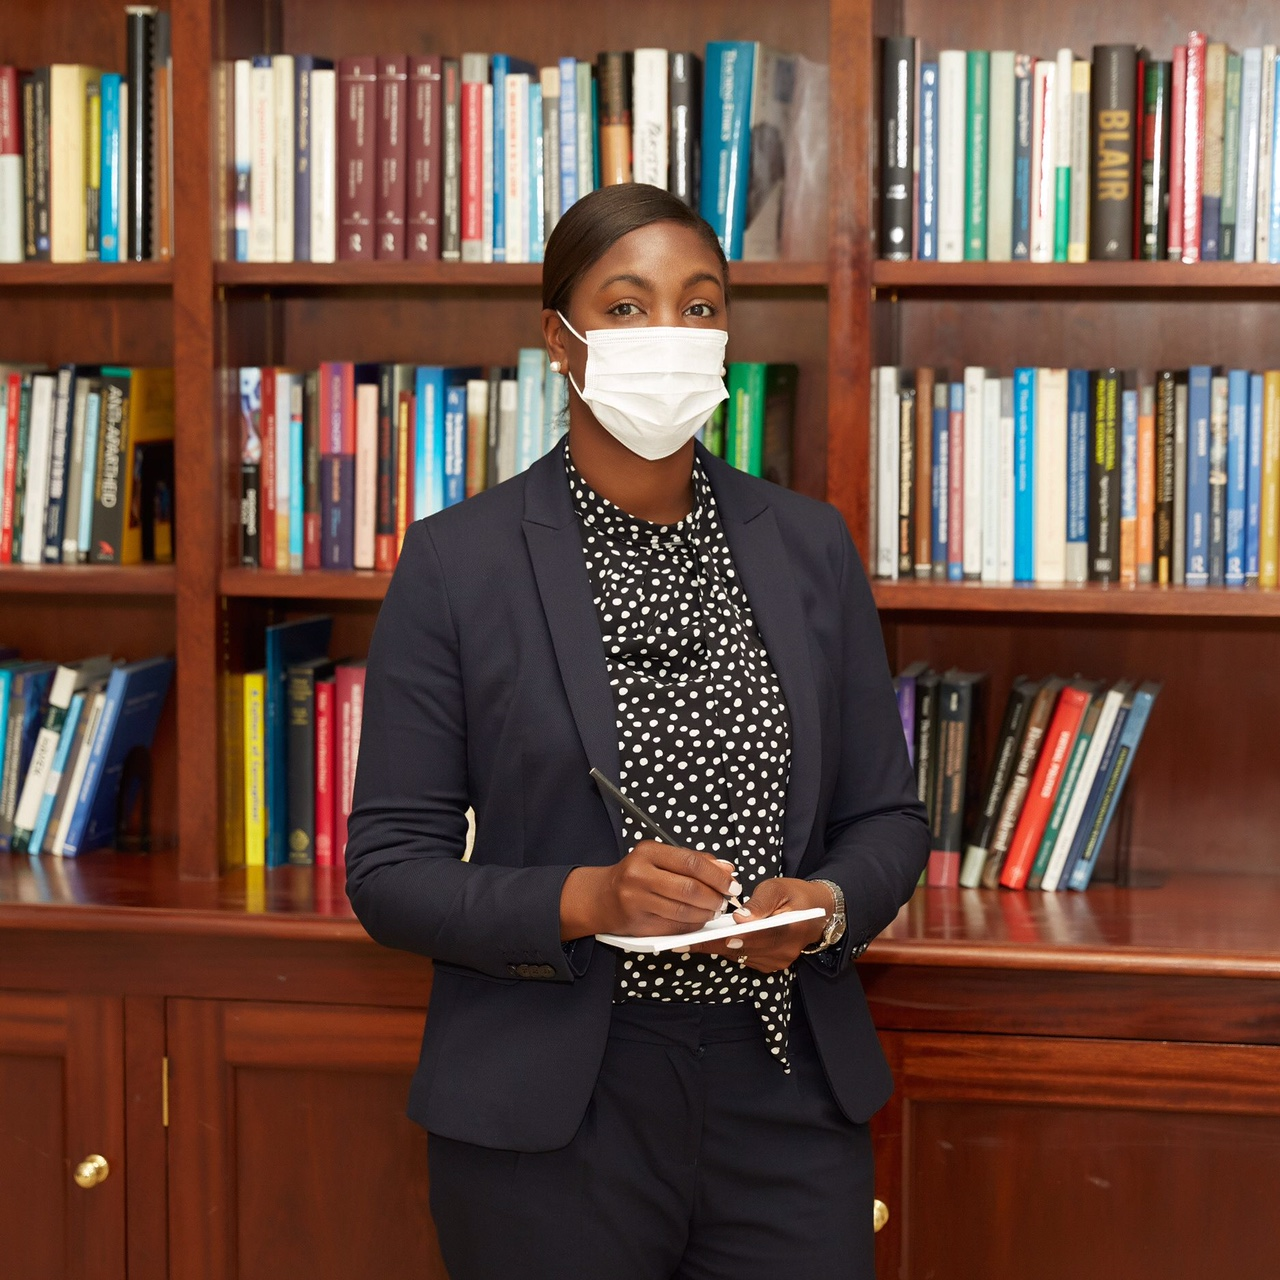 In this image, Marsha is wearing a dark suit and a white polka dot blouse. In her hands is a pen and notepad. Marsha is wearing a white face mask. Behind her is a bookcase, full of books.